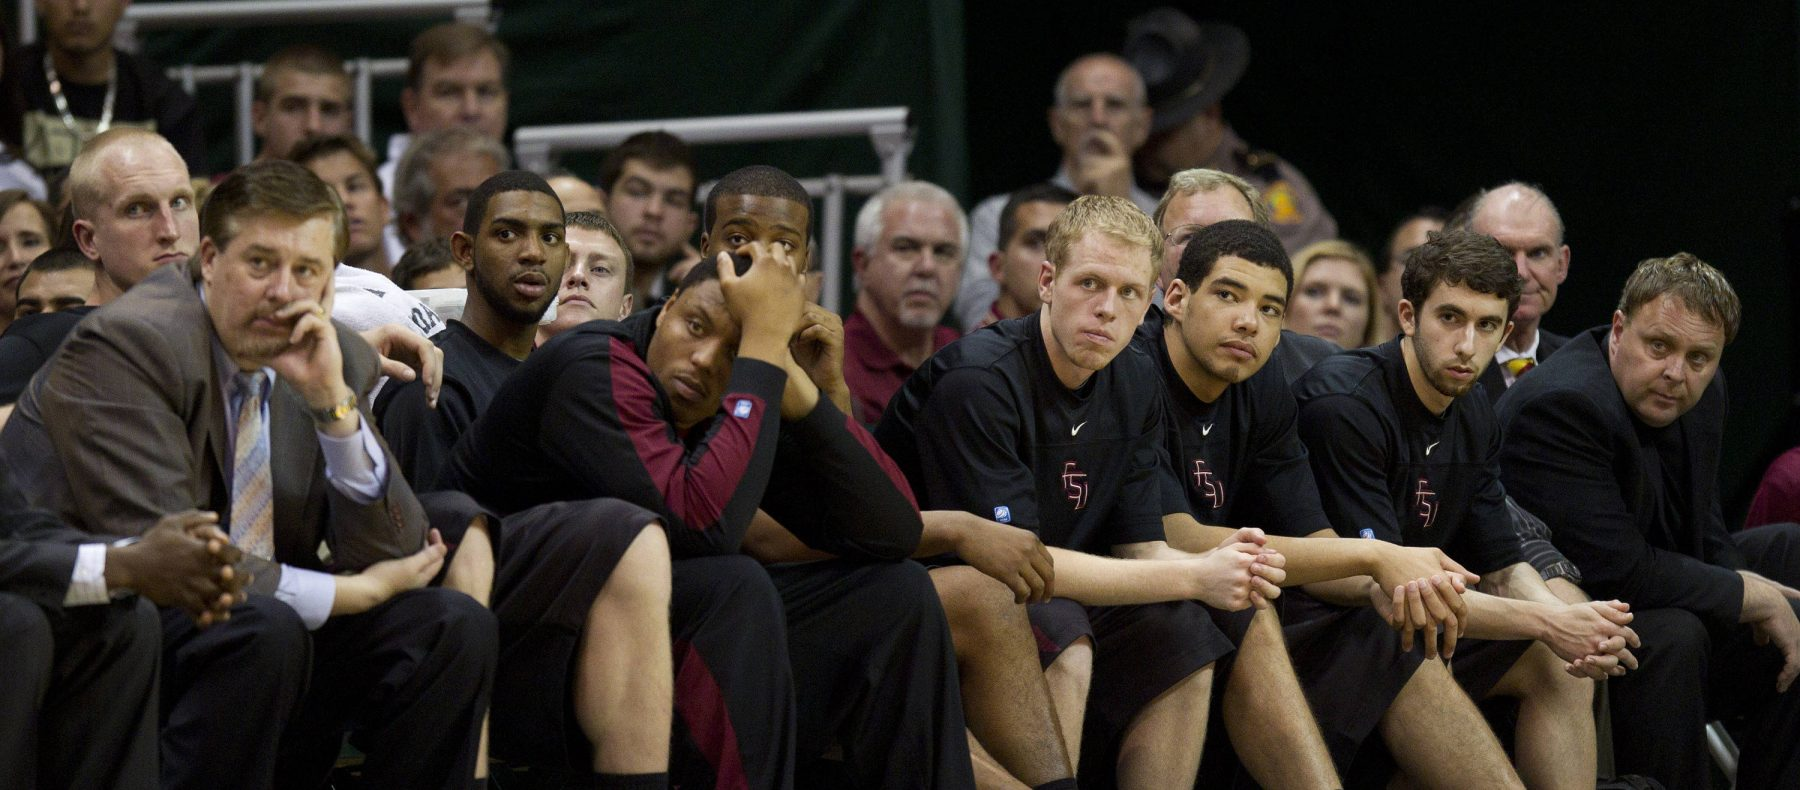 The Florida State bench watches as Miami scores two points during the second half of an NCAA college basketball game in Coral Gables, Fla., Sunday, Feb. 26, 2012. Miami defeated Florida State 78-62. (AP Photo/J Pat Carter)